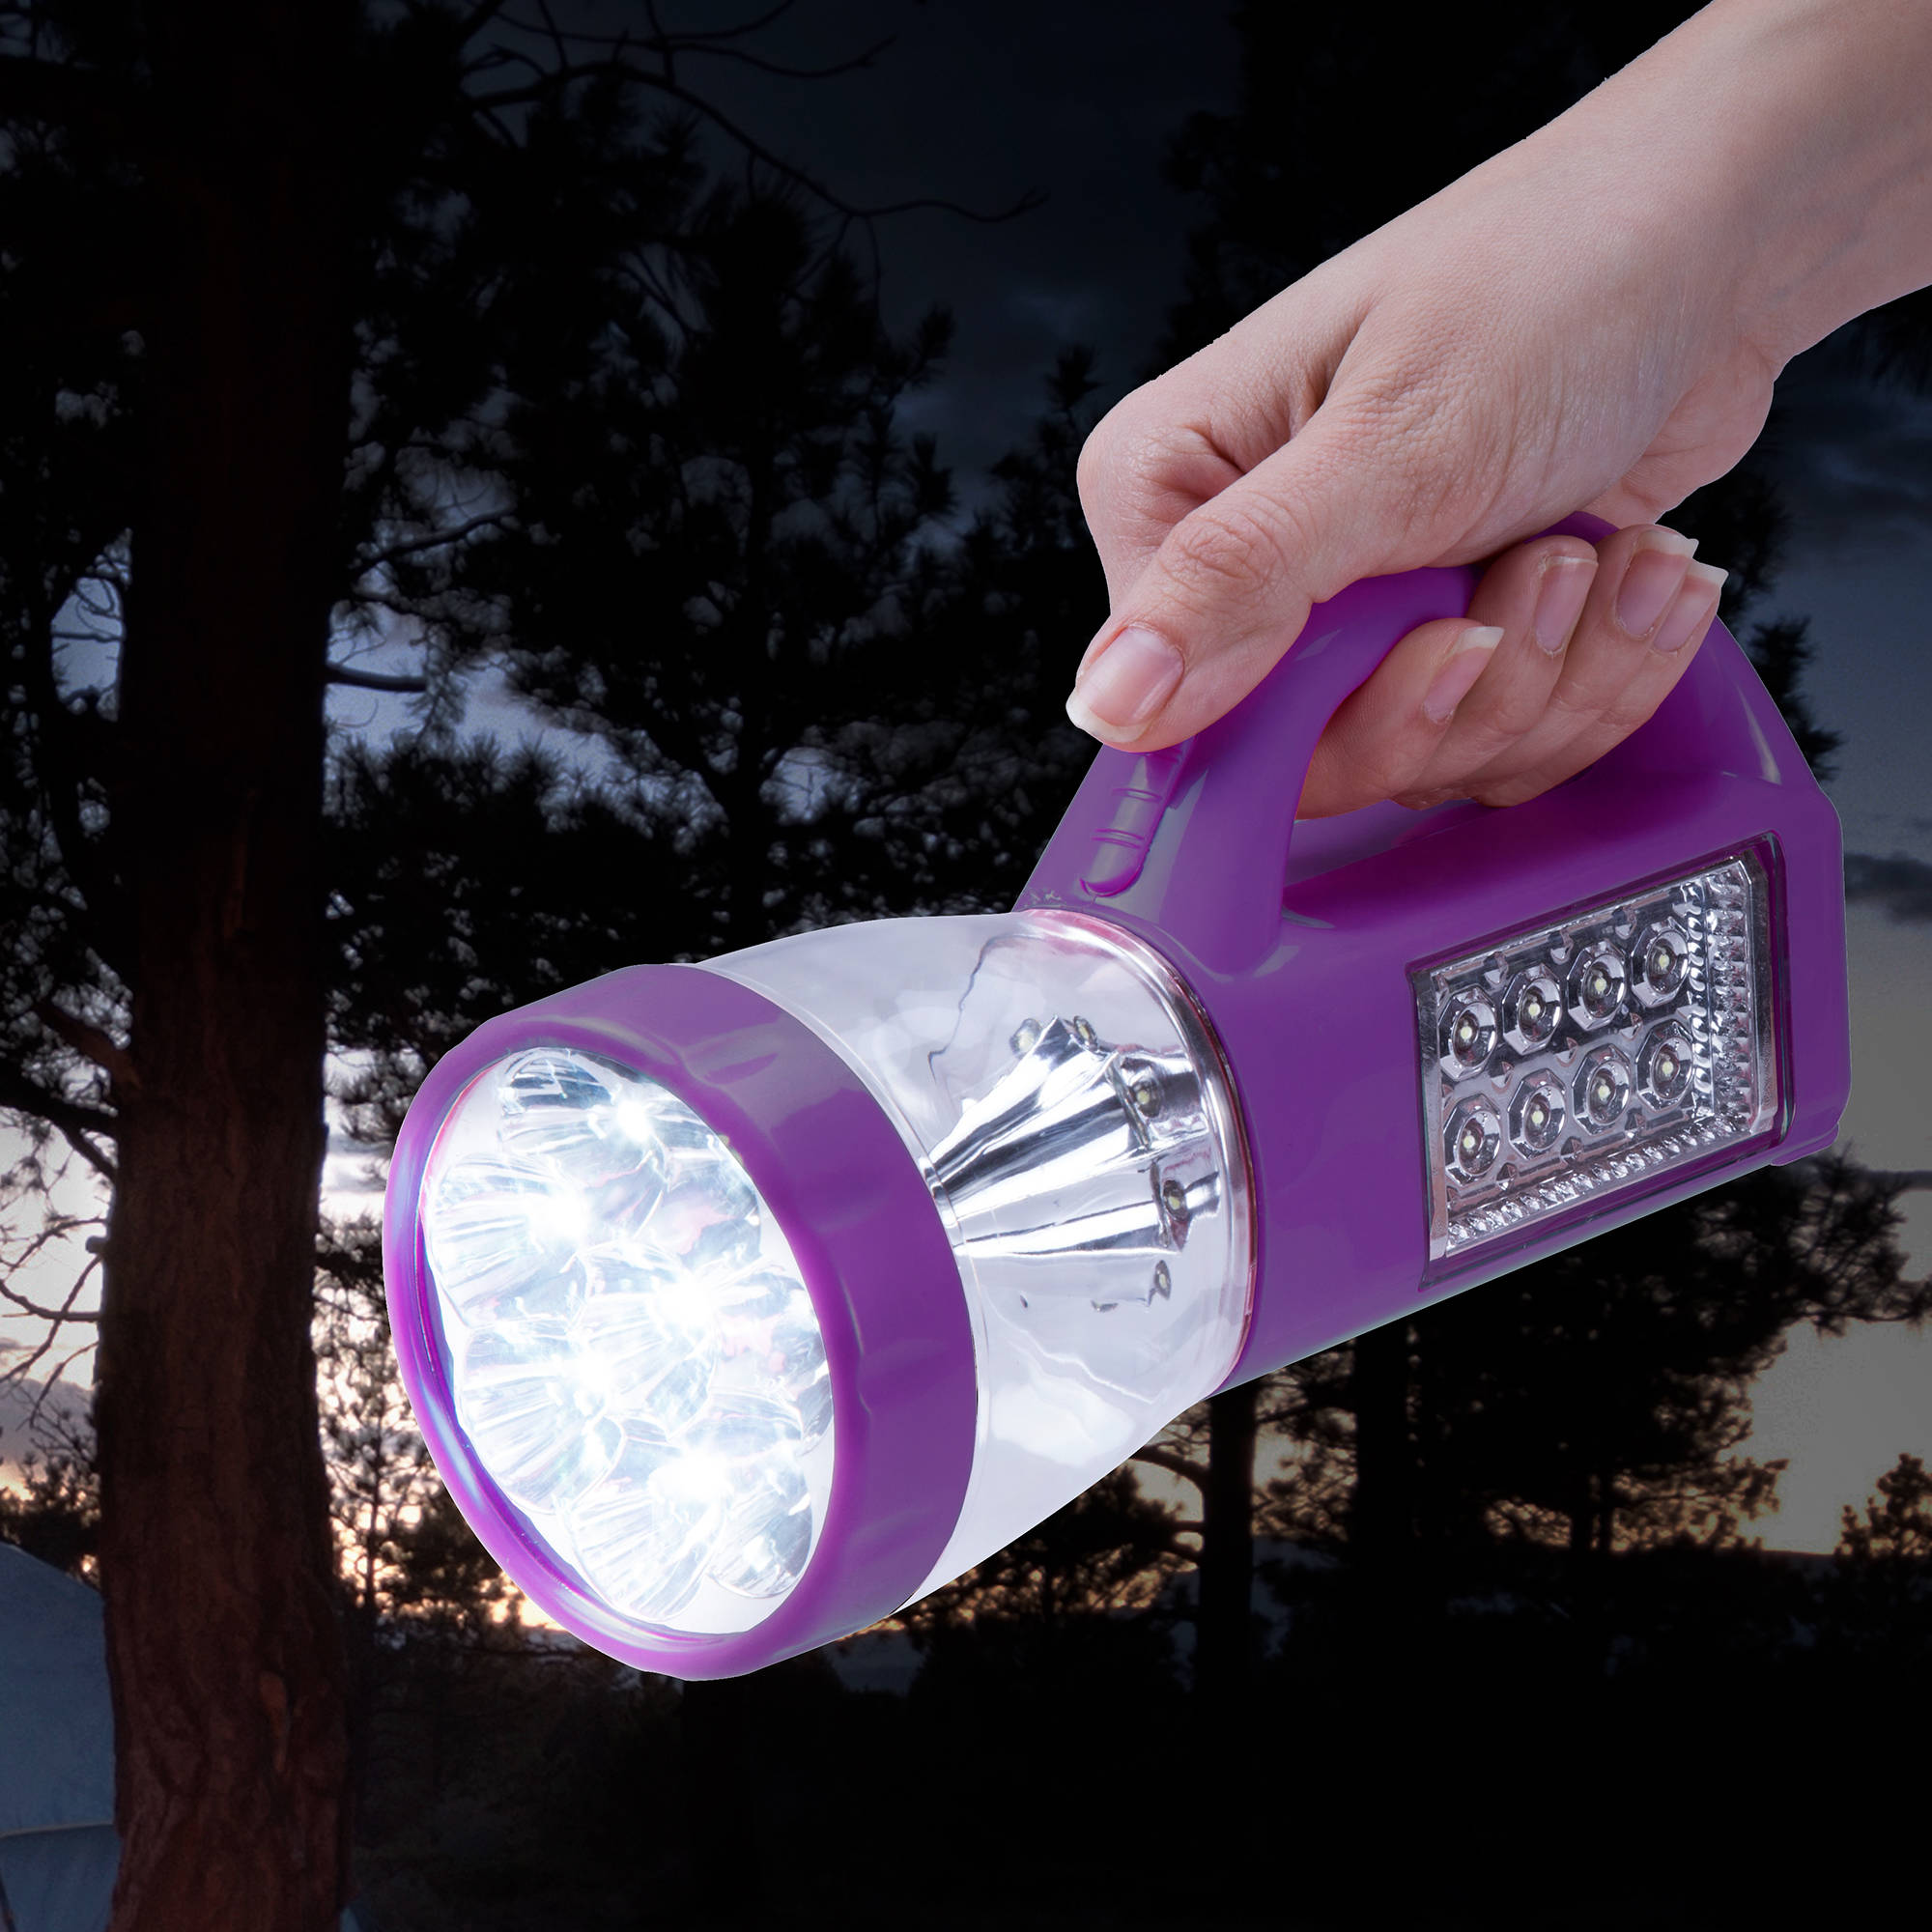 3 in 1 LED Lantern, Flashlight and Panel Light, Lightweight Camping Lantern By Wakeman Outdoors (For Camping Hiking Reading and Emergency) (Purple)